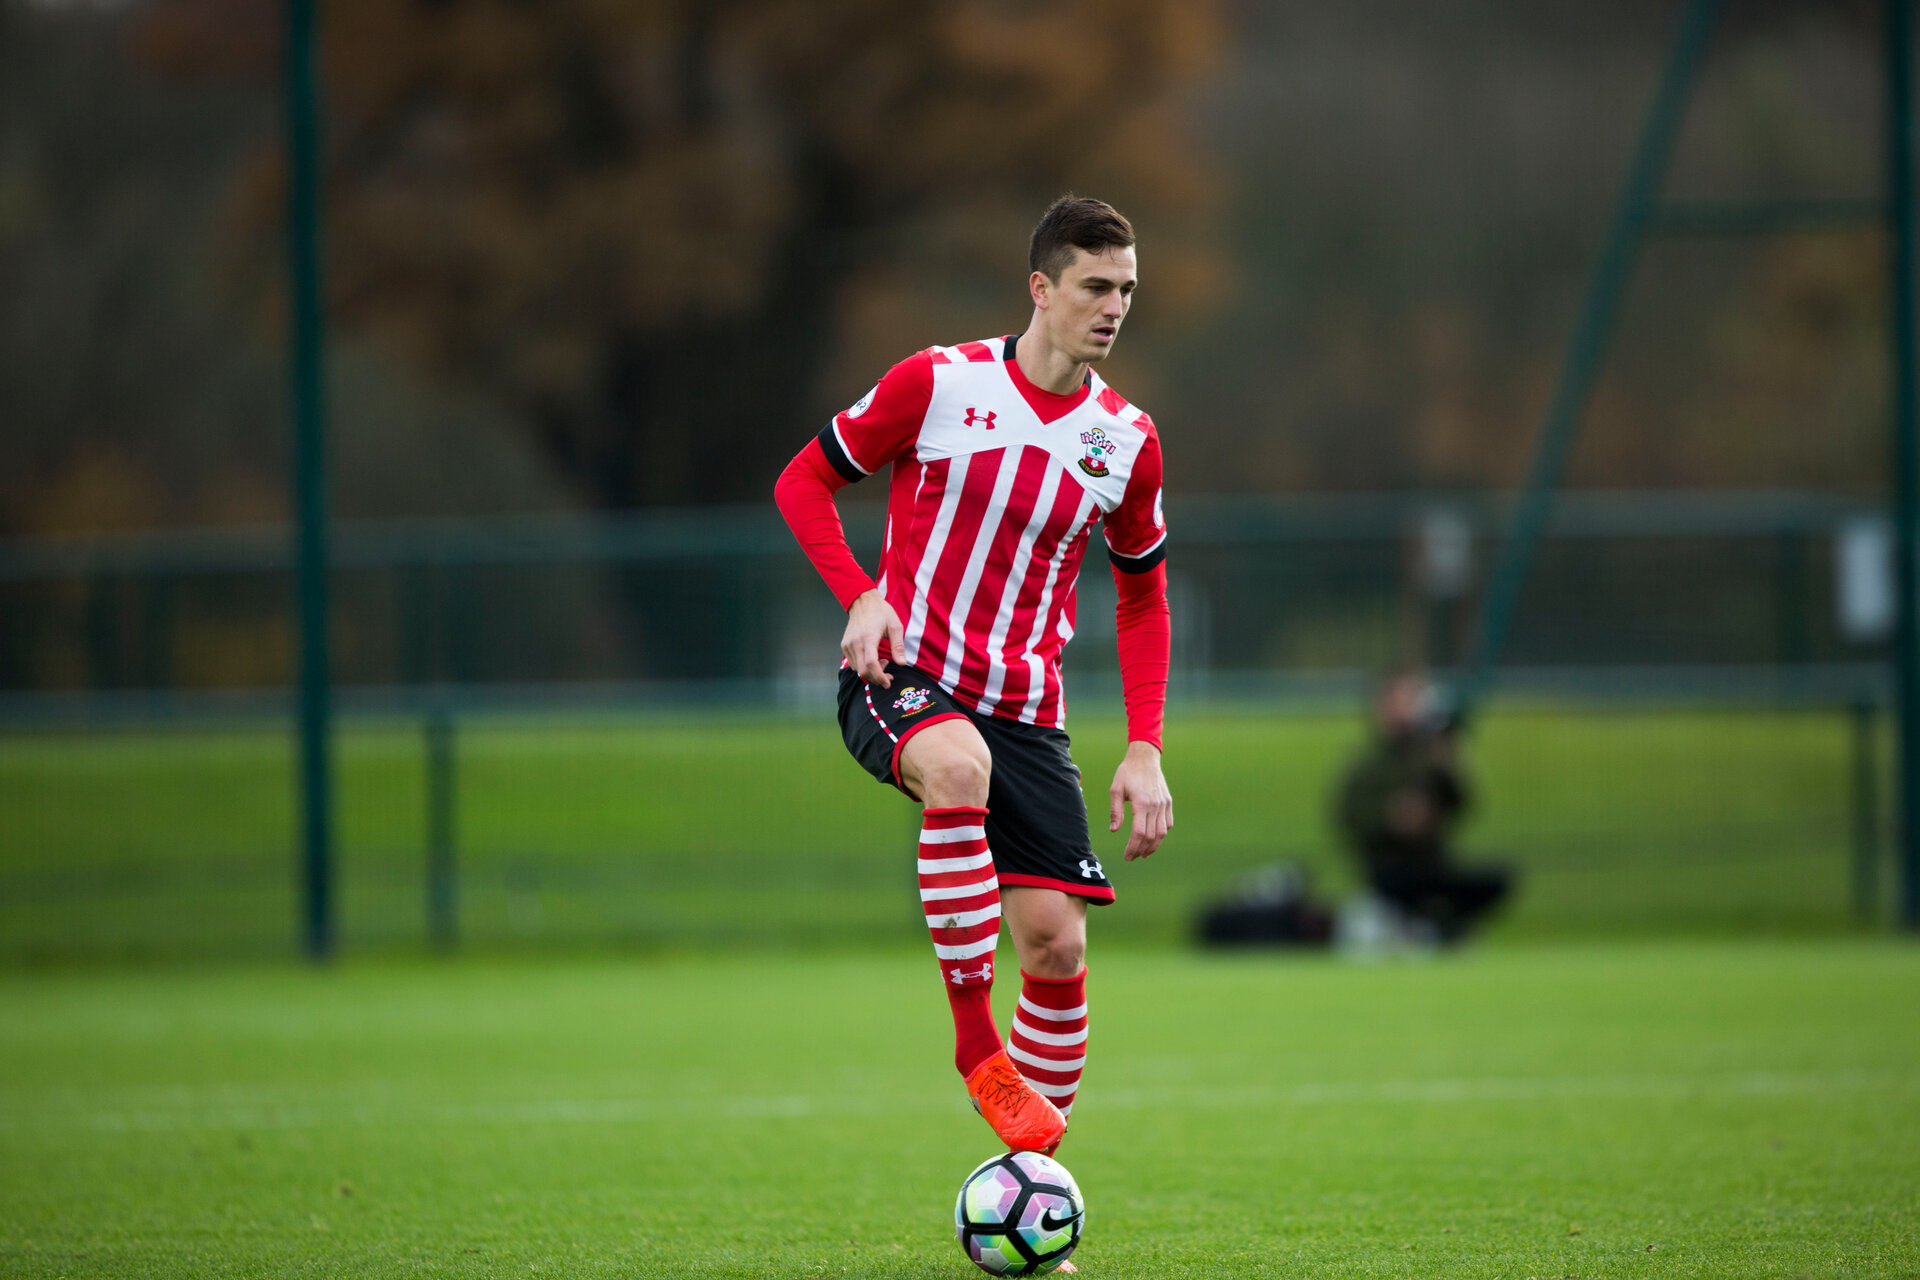 florin gardos during Southampton FC U23 v Chelsea FC U23, at Cobham Training ground, Cobham, 21st November 2016, pic by Naomi Baker/Southampton FC